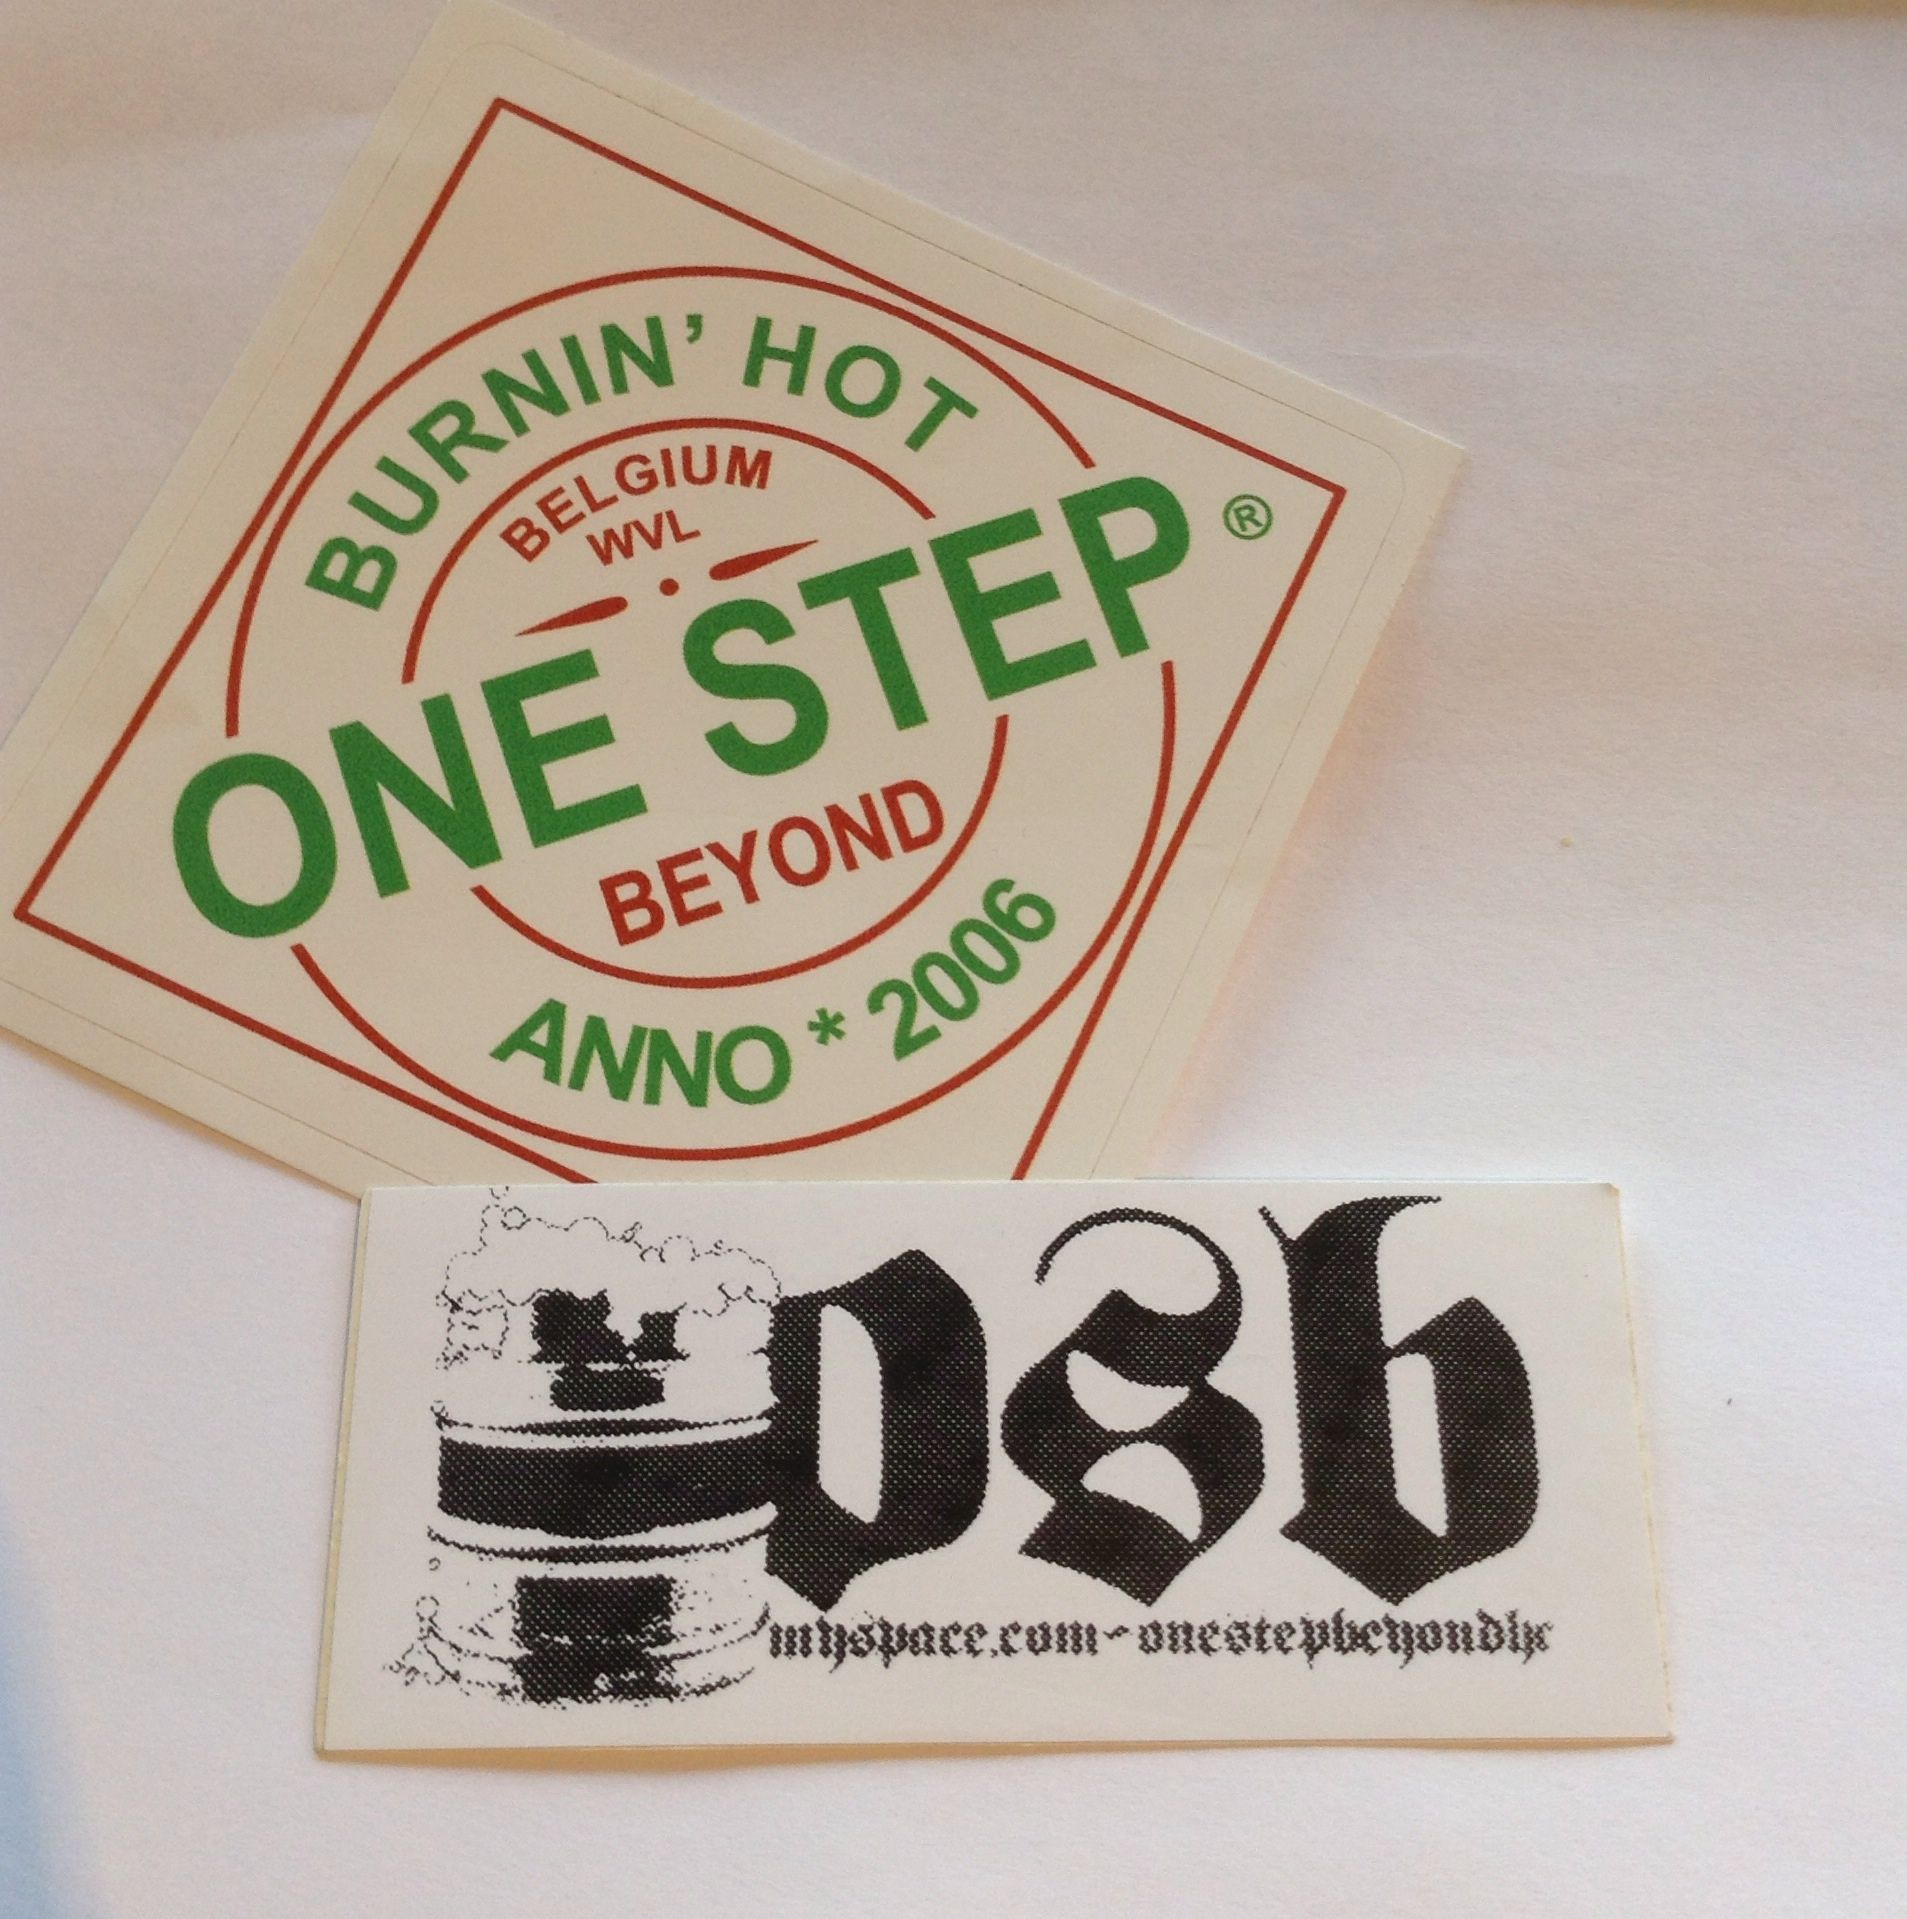 One Step Beyond - Belgium hardcore #onestepbeyond #osb